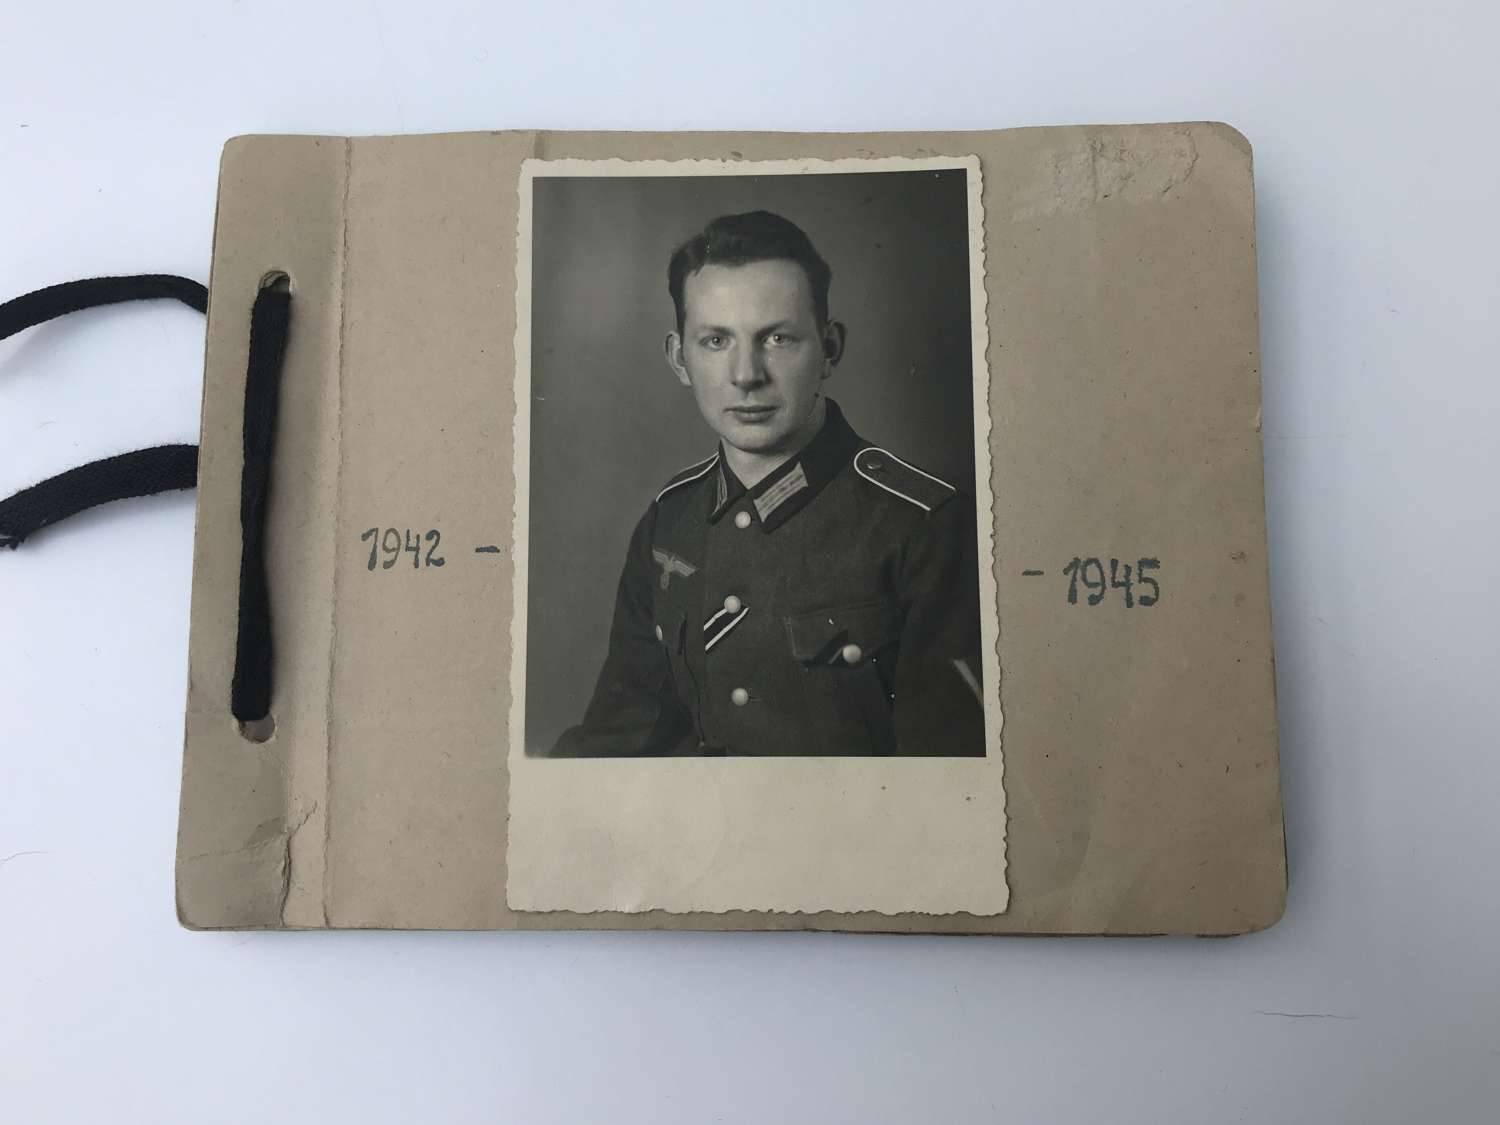 Mid war German Mountain troops photograph album